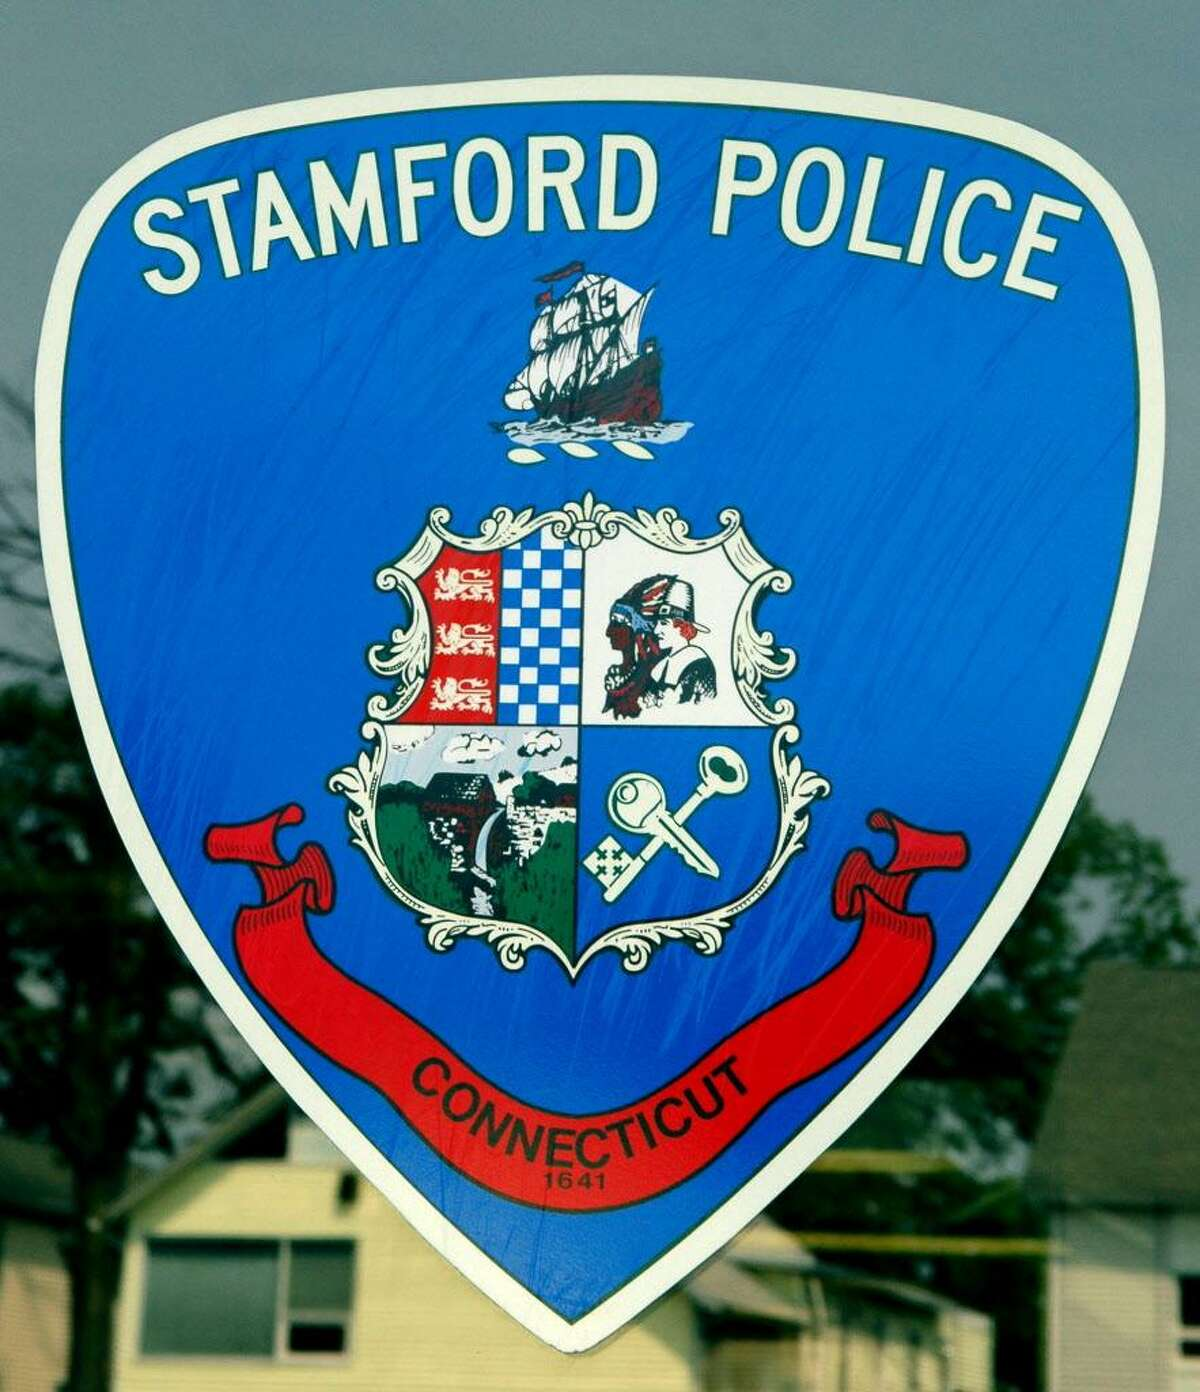 Stamford Police sheild at Headquarters at 805 Bedford Street in Stamford, Conn. on Wednesday June 8, 2011.